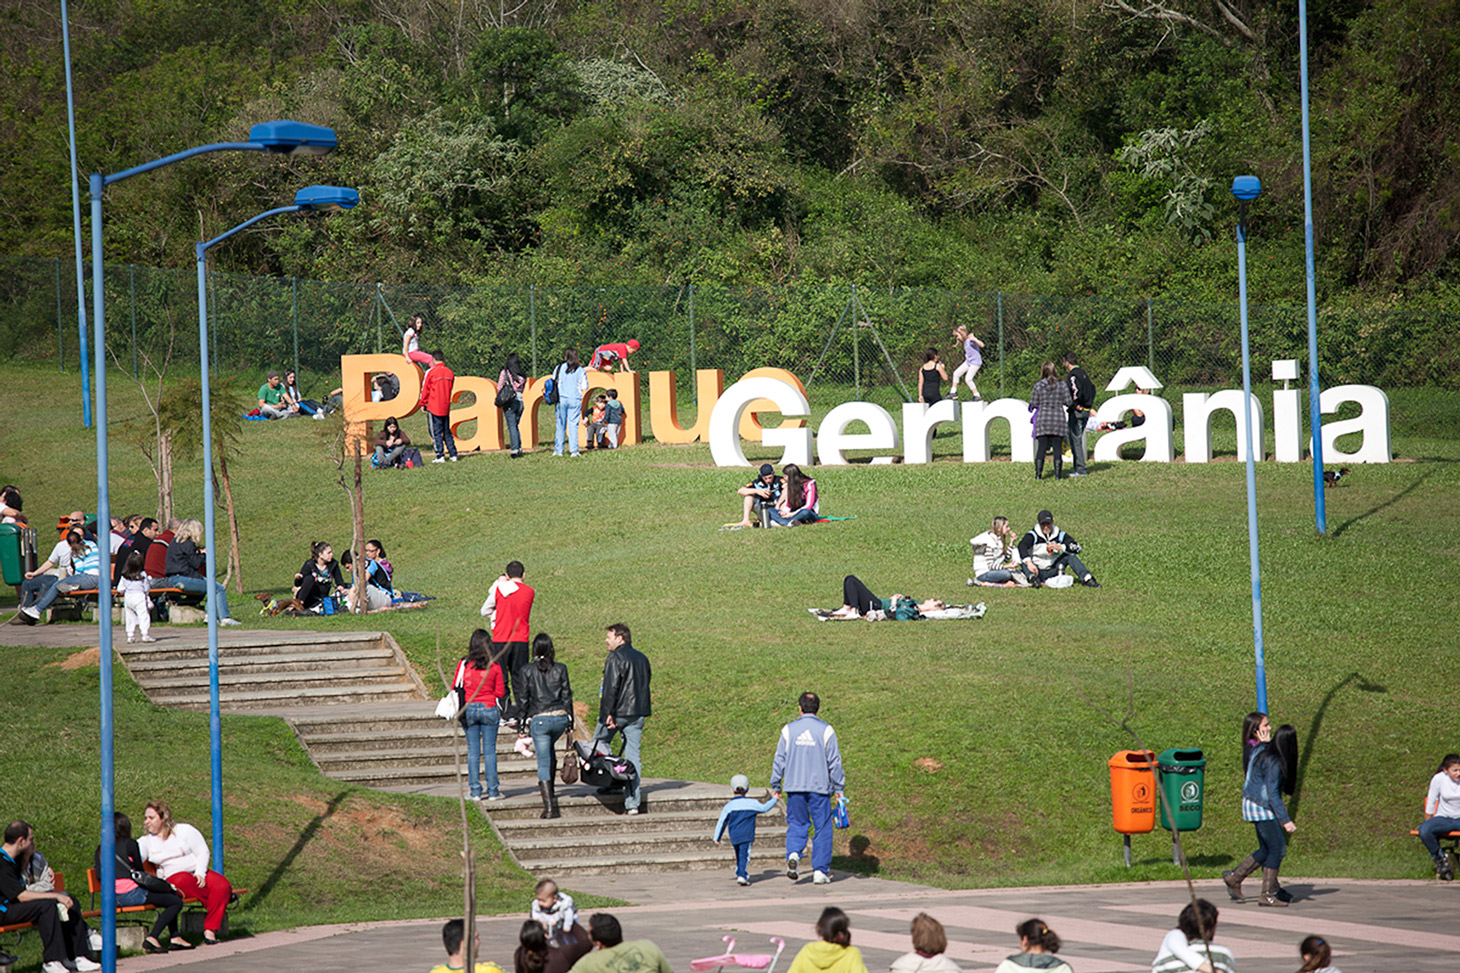 F natalensis in addition Image Gateway Canyons Resort 201309 181 web furthermore Parque Germania Cyrela Goldsztein also C 4 furthermore Intro. on environmental design